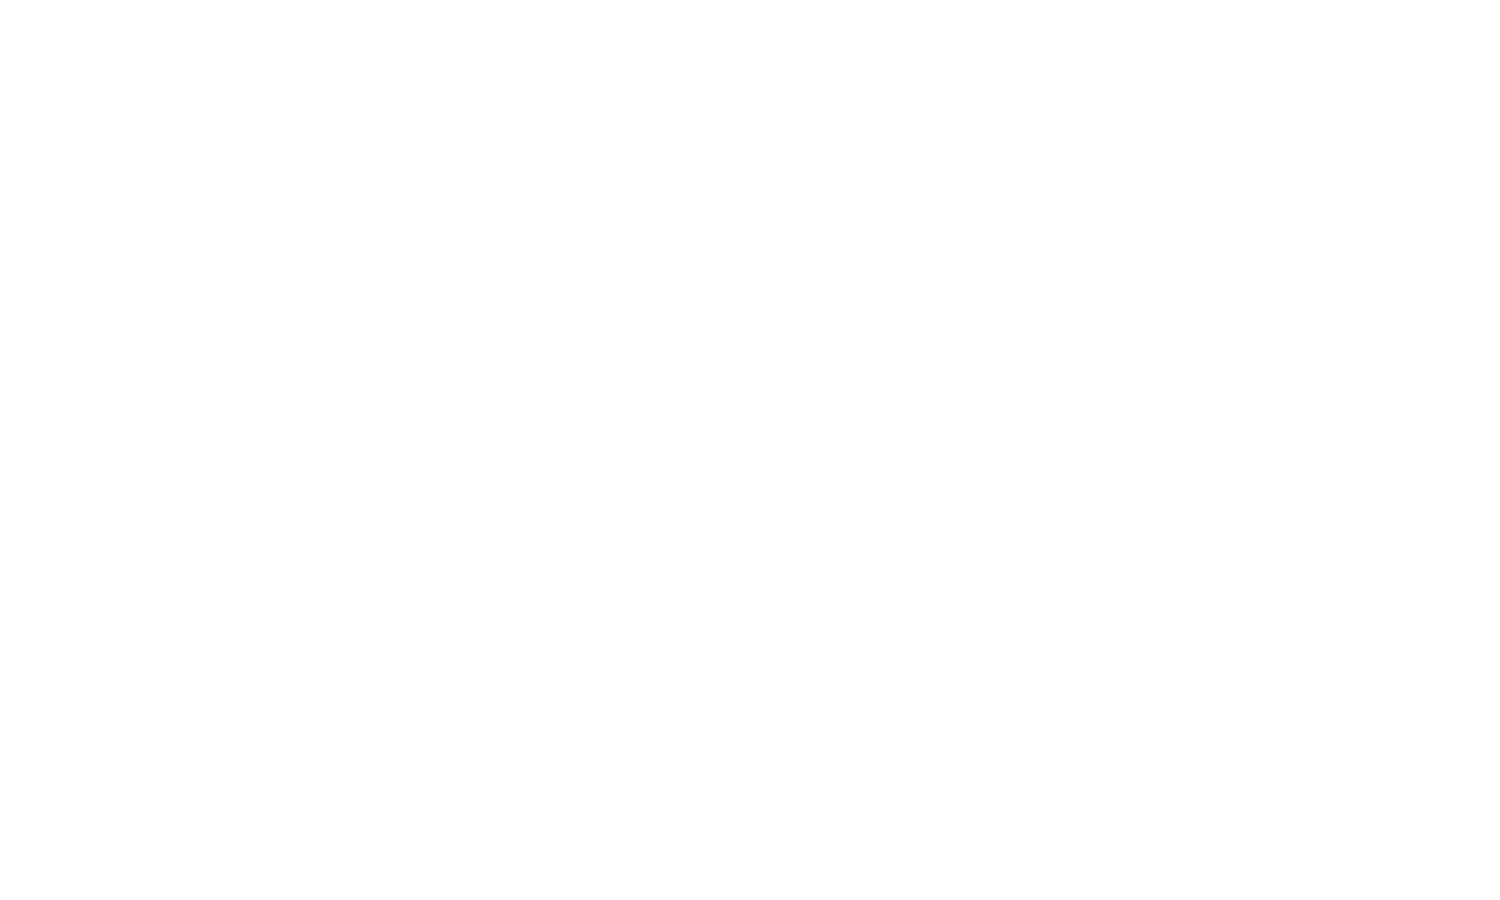 Billie logo white